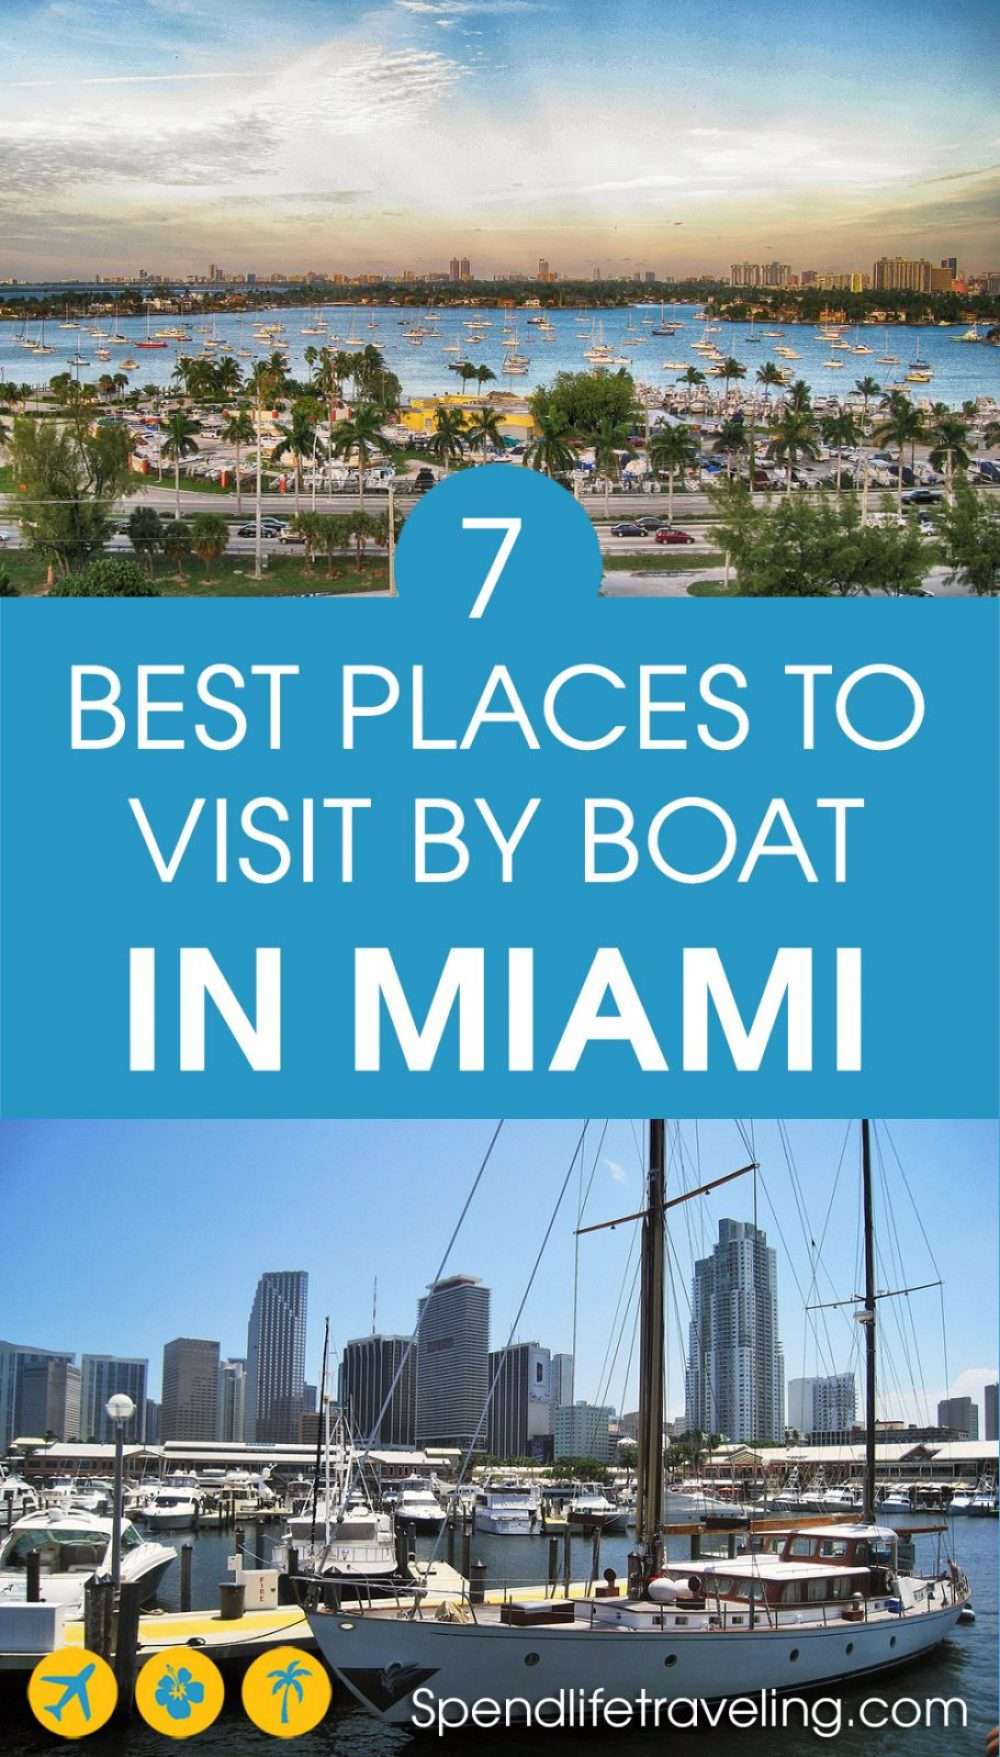 Looking for good boating spots in #Miami? Check out this list with places that are great to visit by boat. #boating #rentaboat #travelbyboat #visitMiami